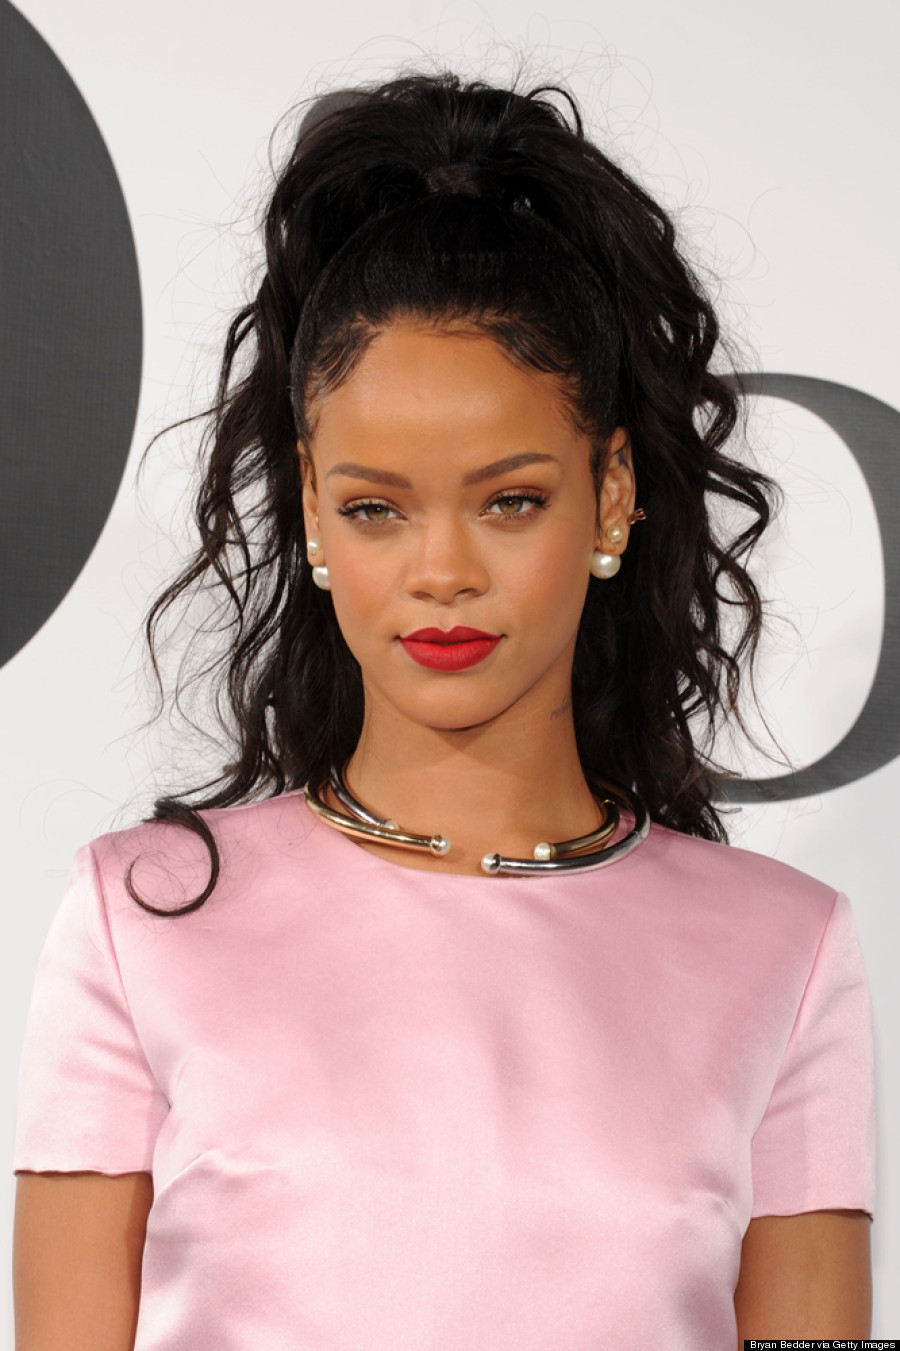 Rihanna Latest Victim Fall Prey Nipple Darts